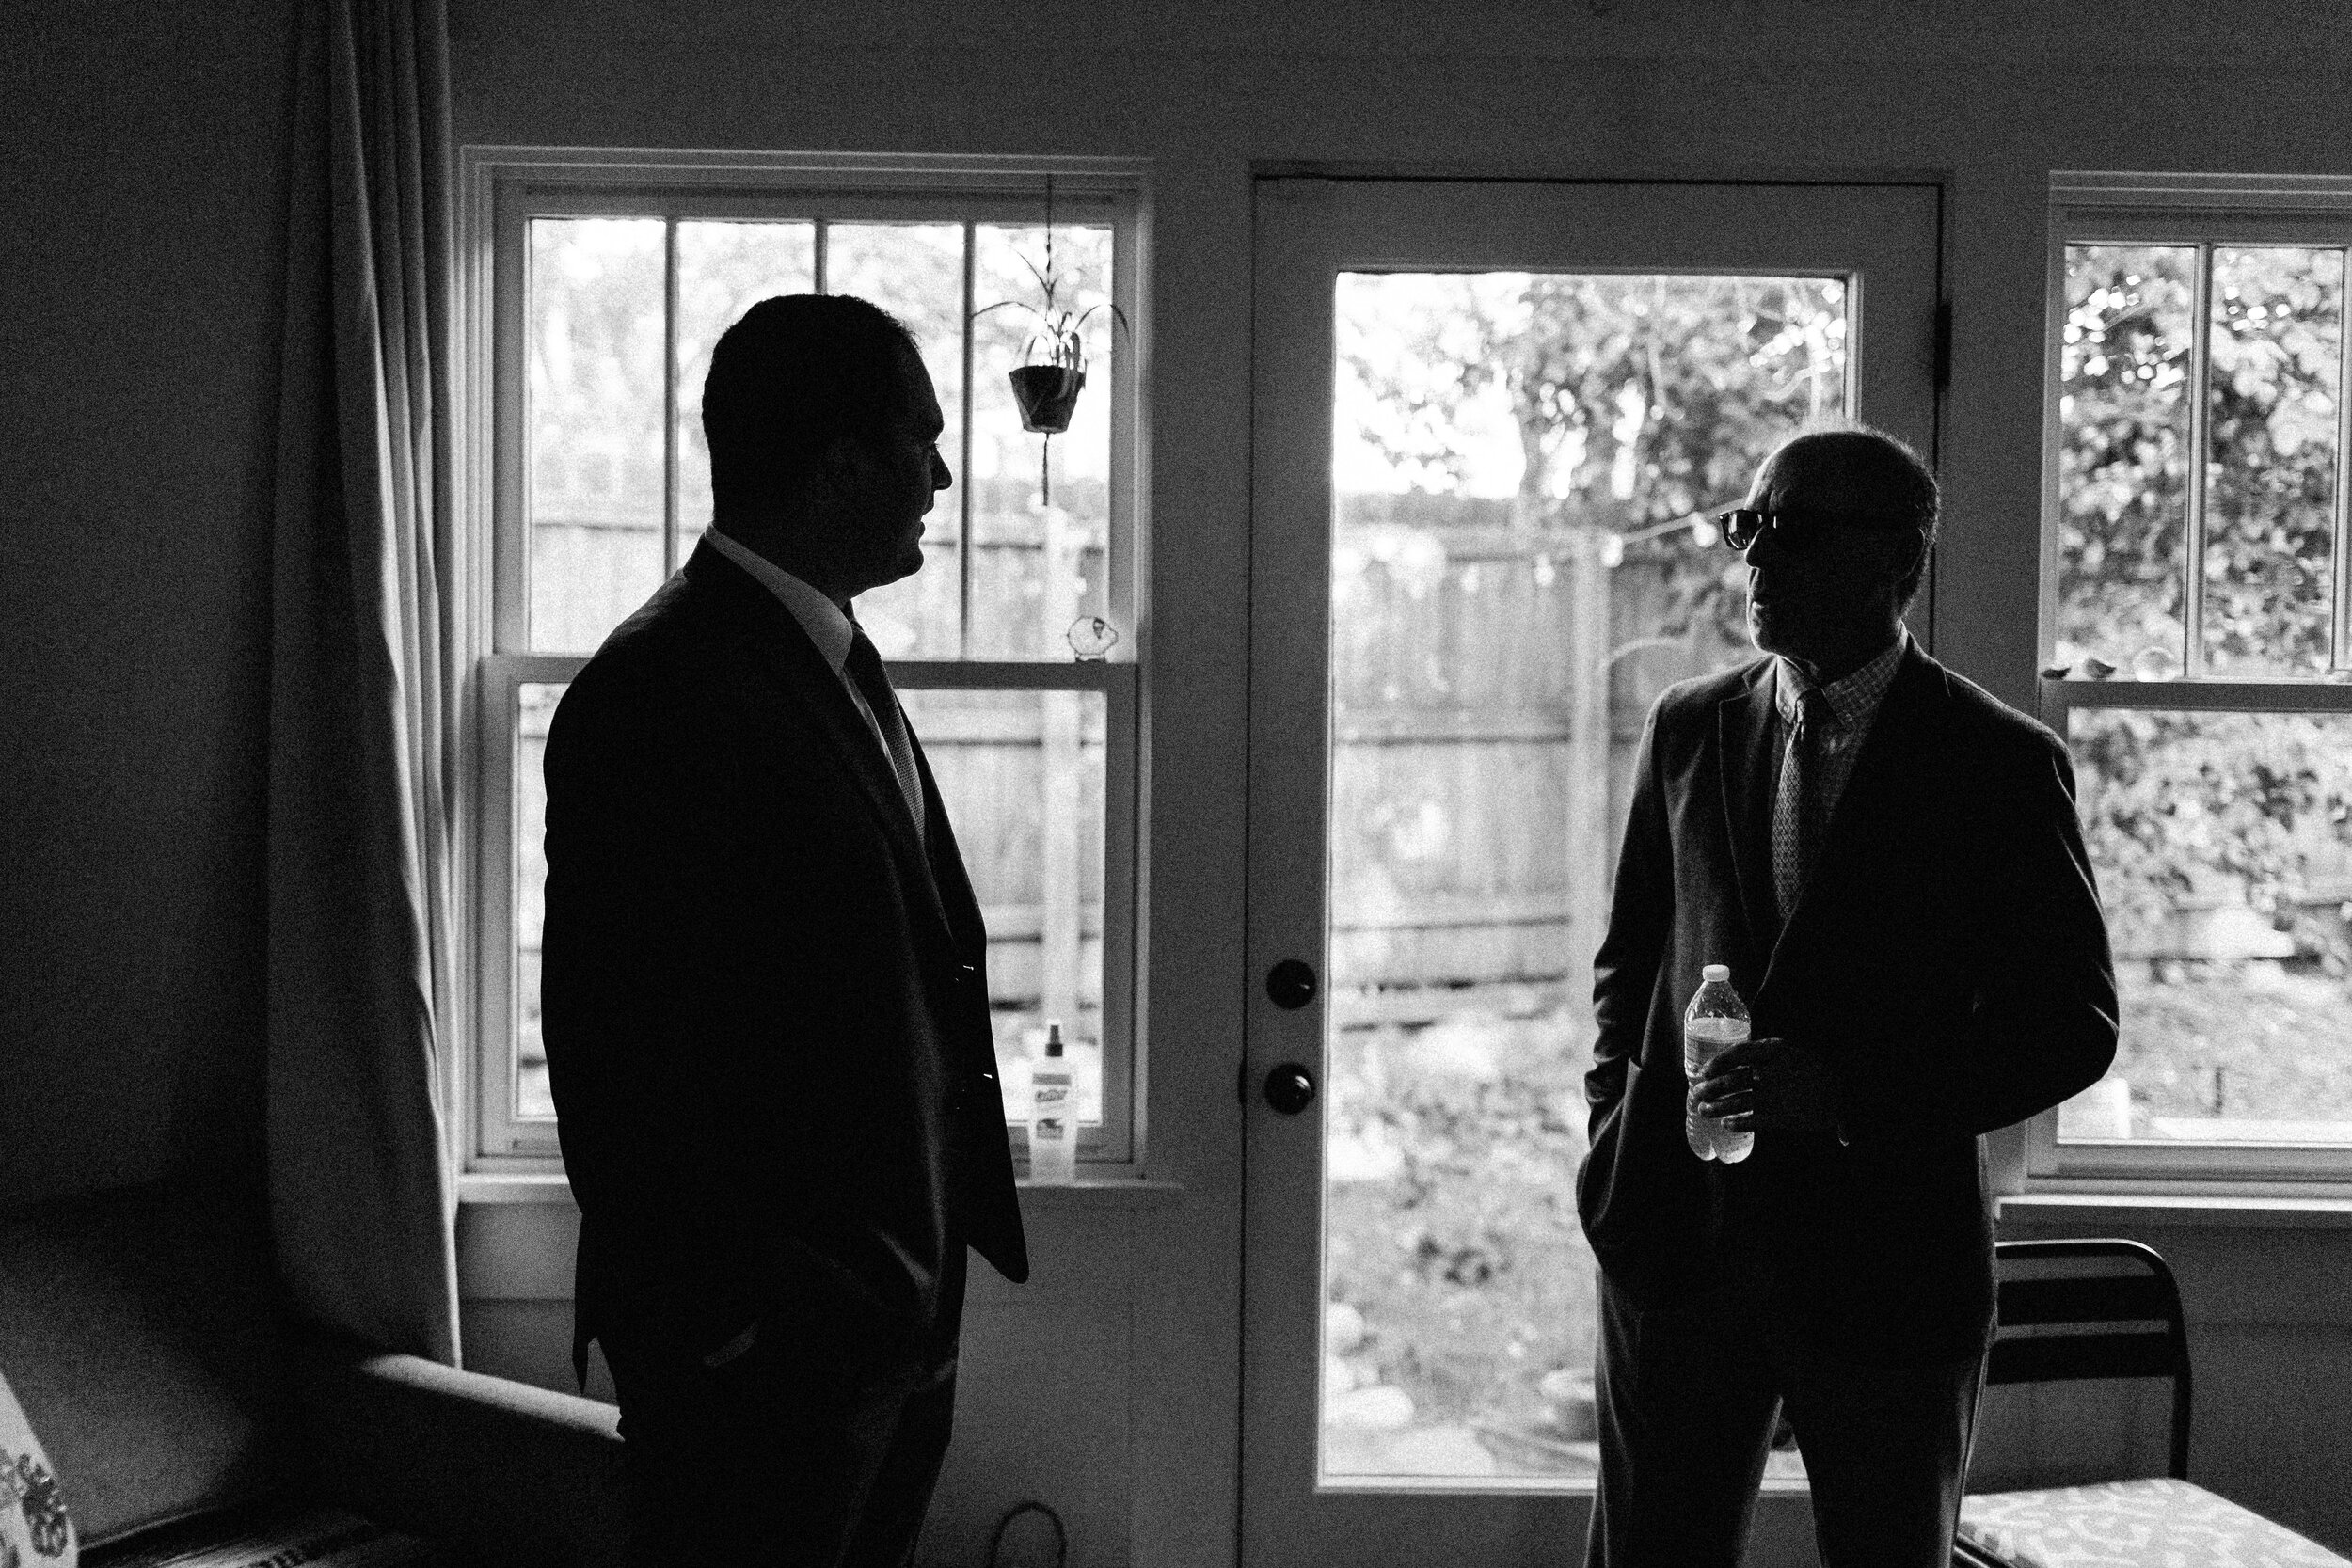 backyard_sun_in_my_belly_wedding_diy_at_home_atlanta_inman_park_arty_photographer_1355.jpg